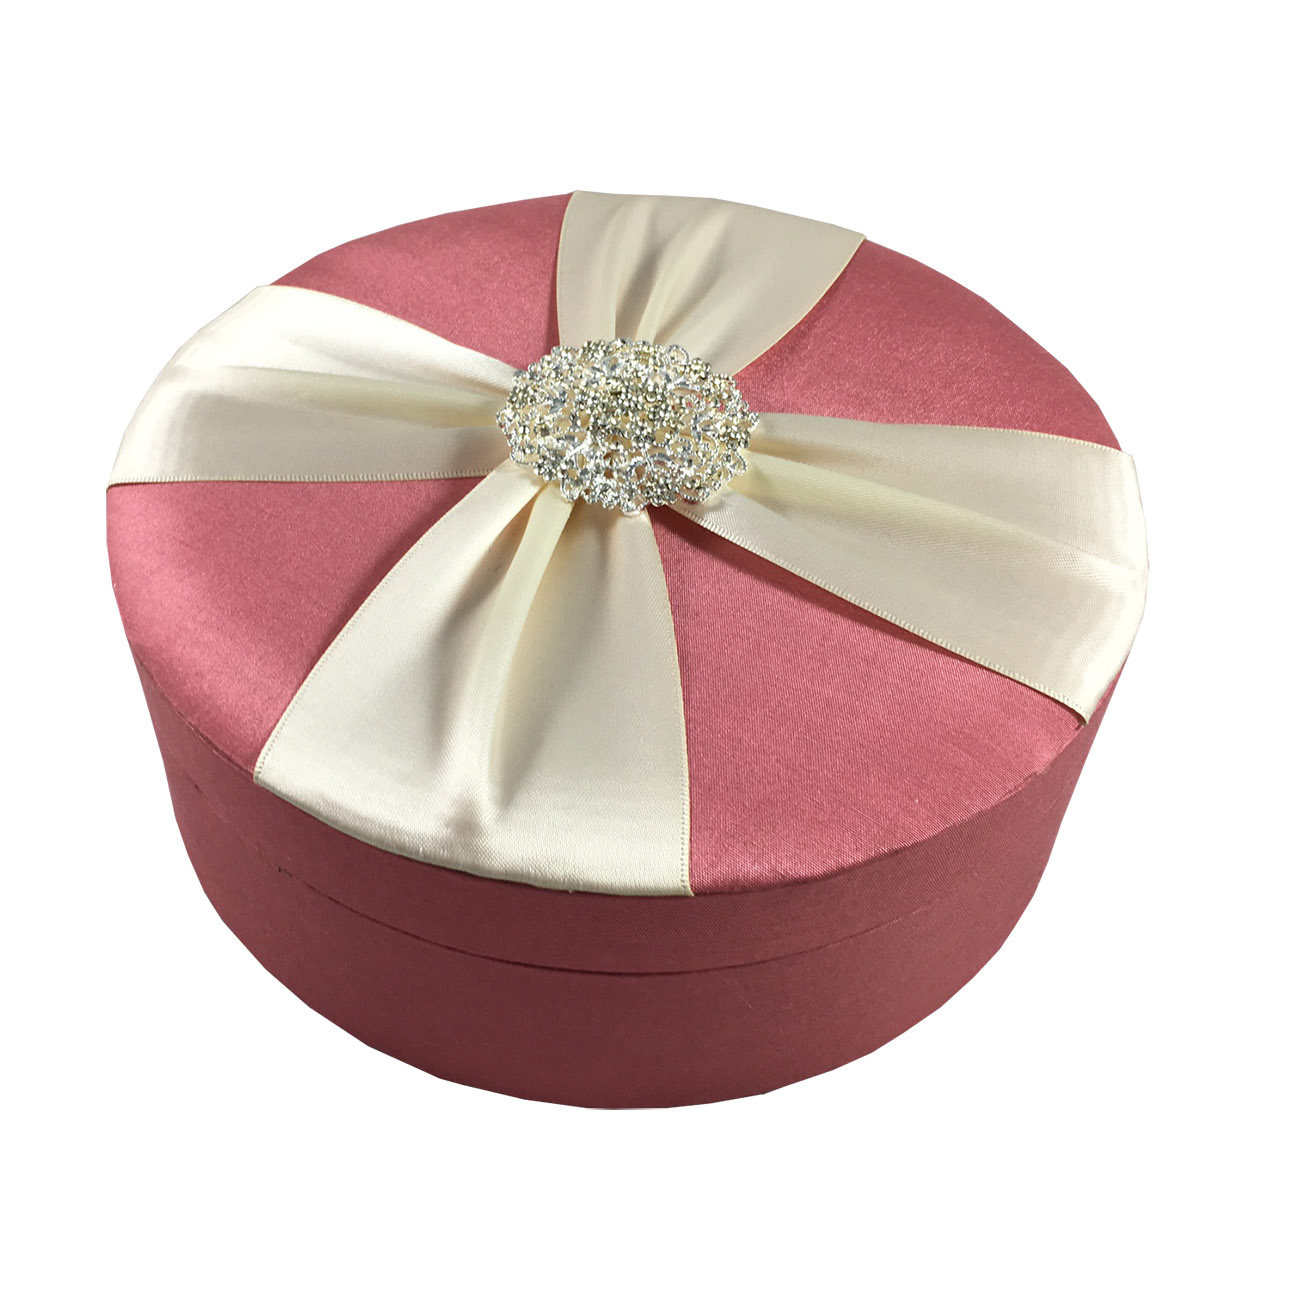 Luxury Rhinestone Brooch Embellished Coral Silk Wedding Cake Box ...